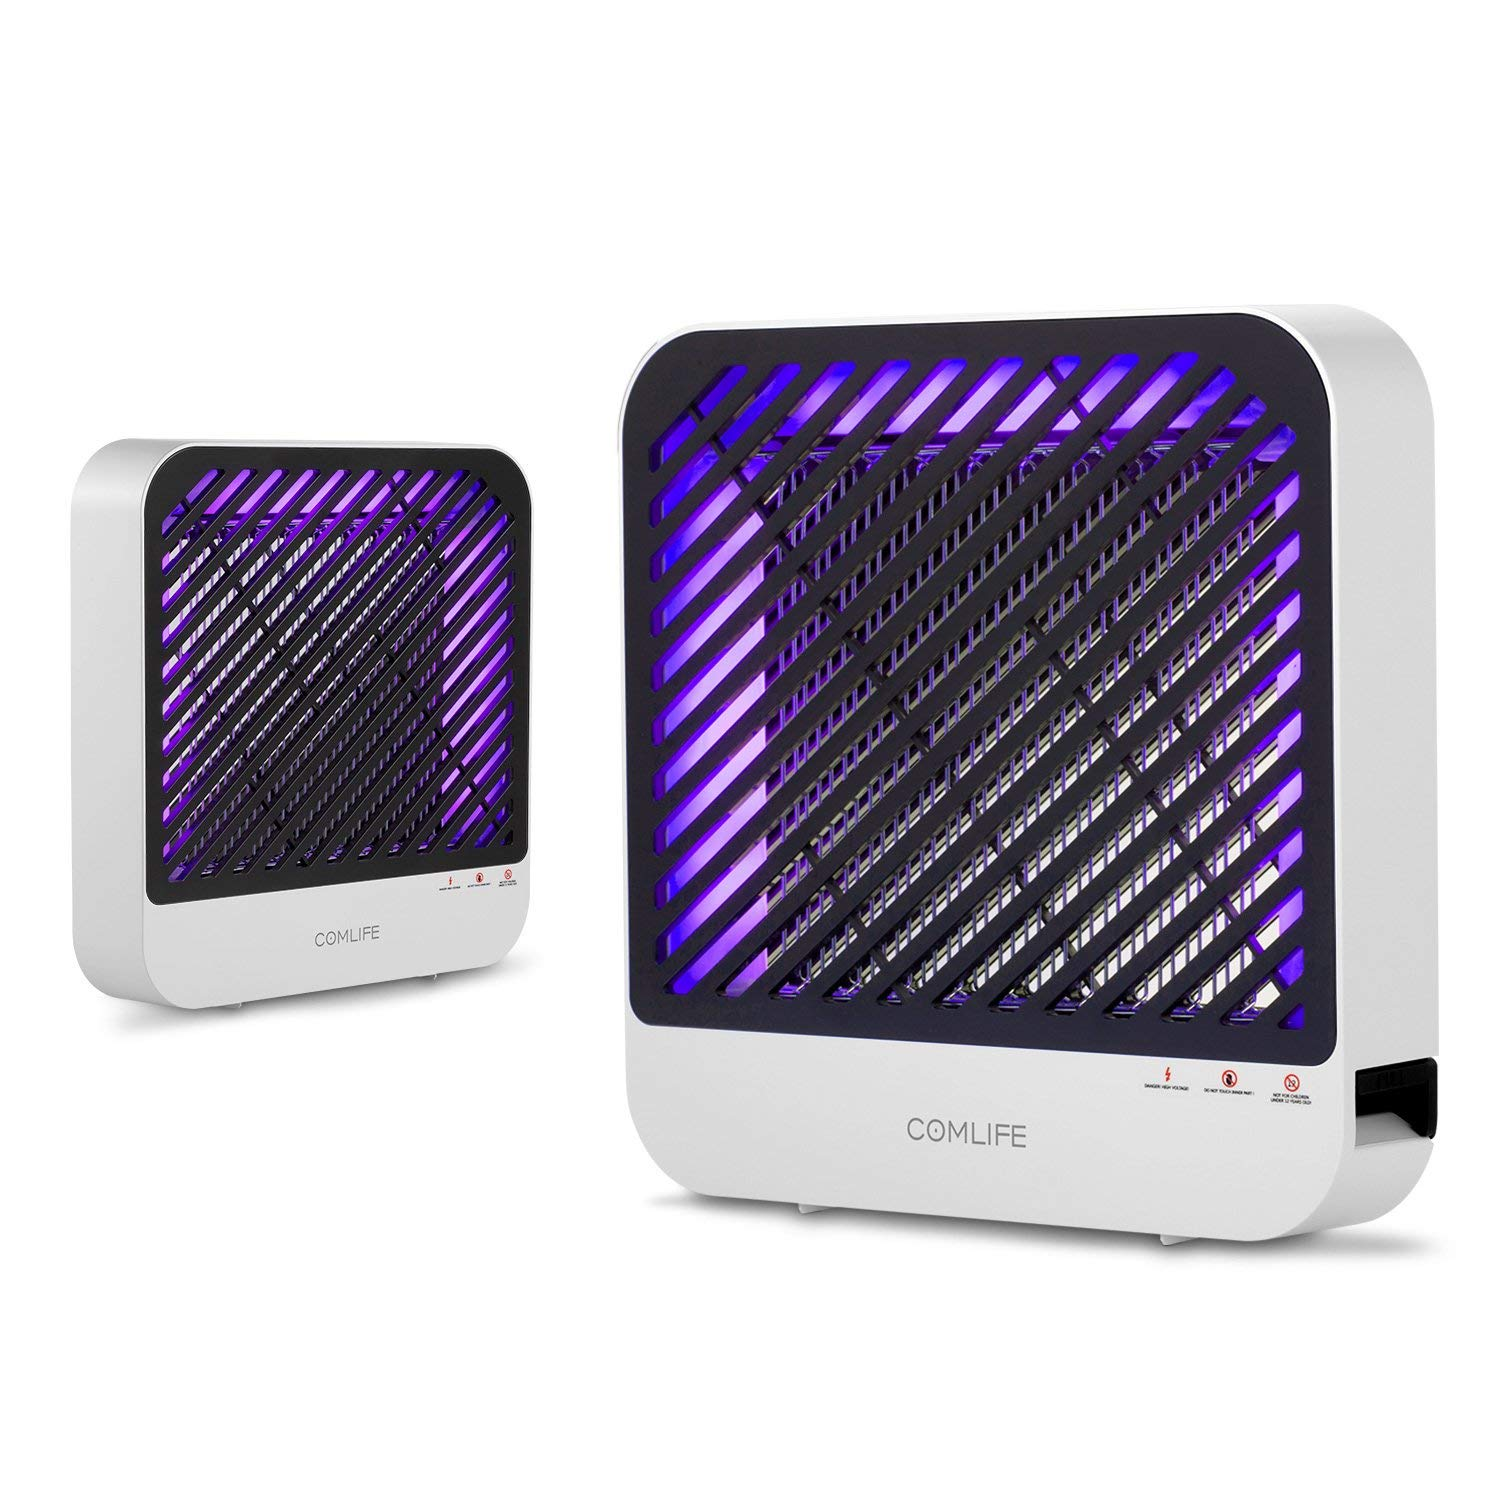 COMLIFE Bug Zapper & Electric Indoor Insect Killer, UV LED Light Fly Zapper, Mosquito Killer, Nontoxic Indoor Fly Catcher, Insect Trap Lamp, for Residential, Commercial and Industrial Use